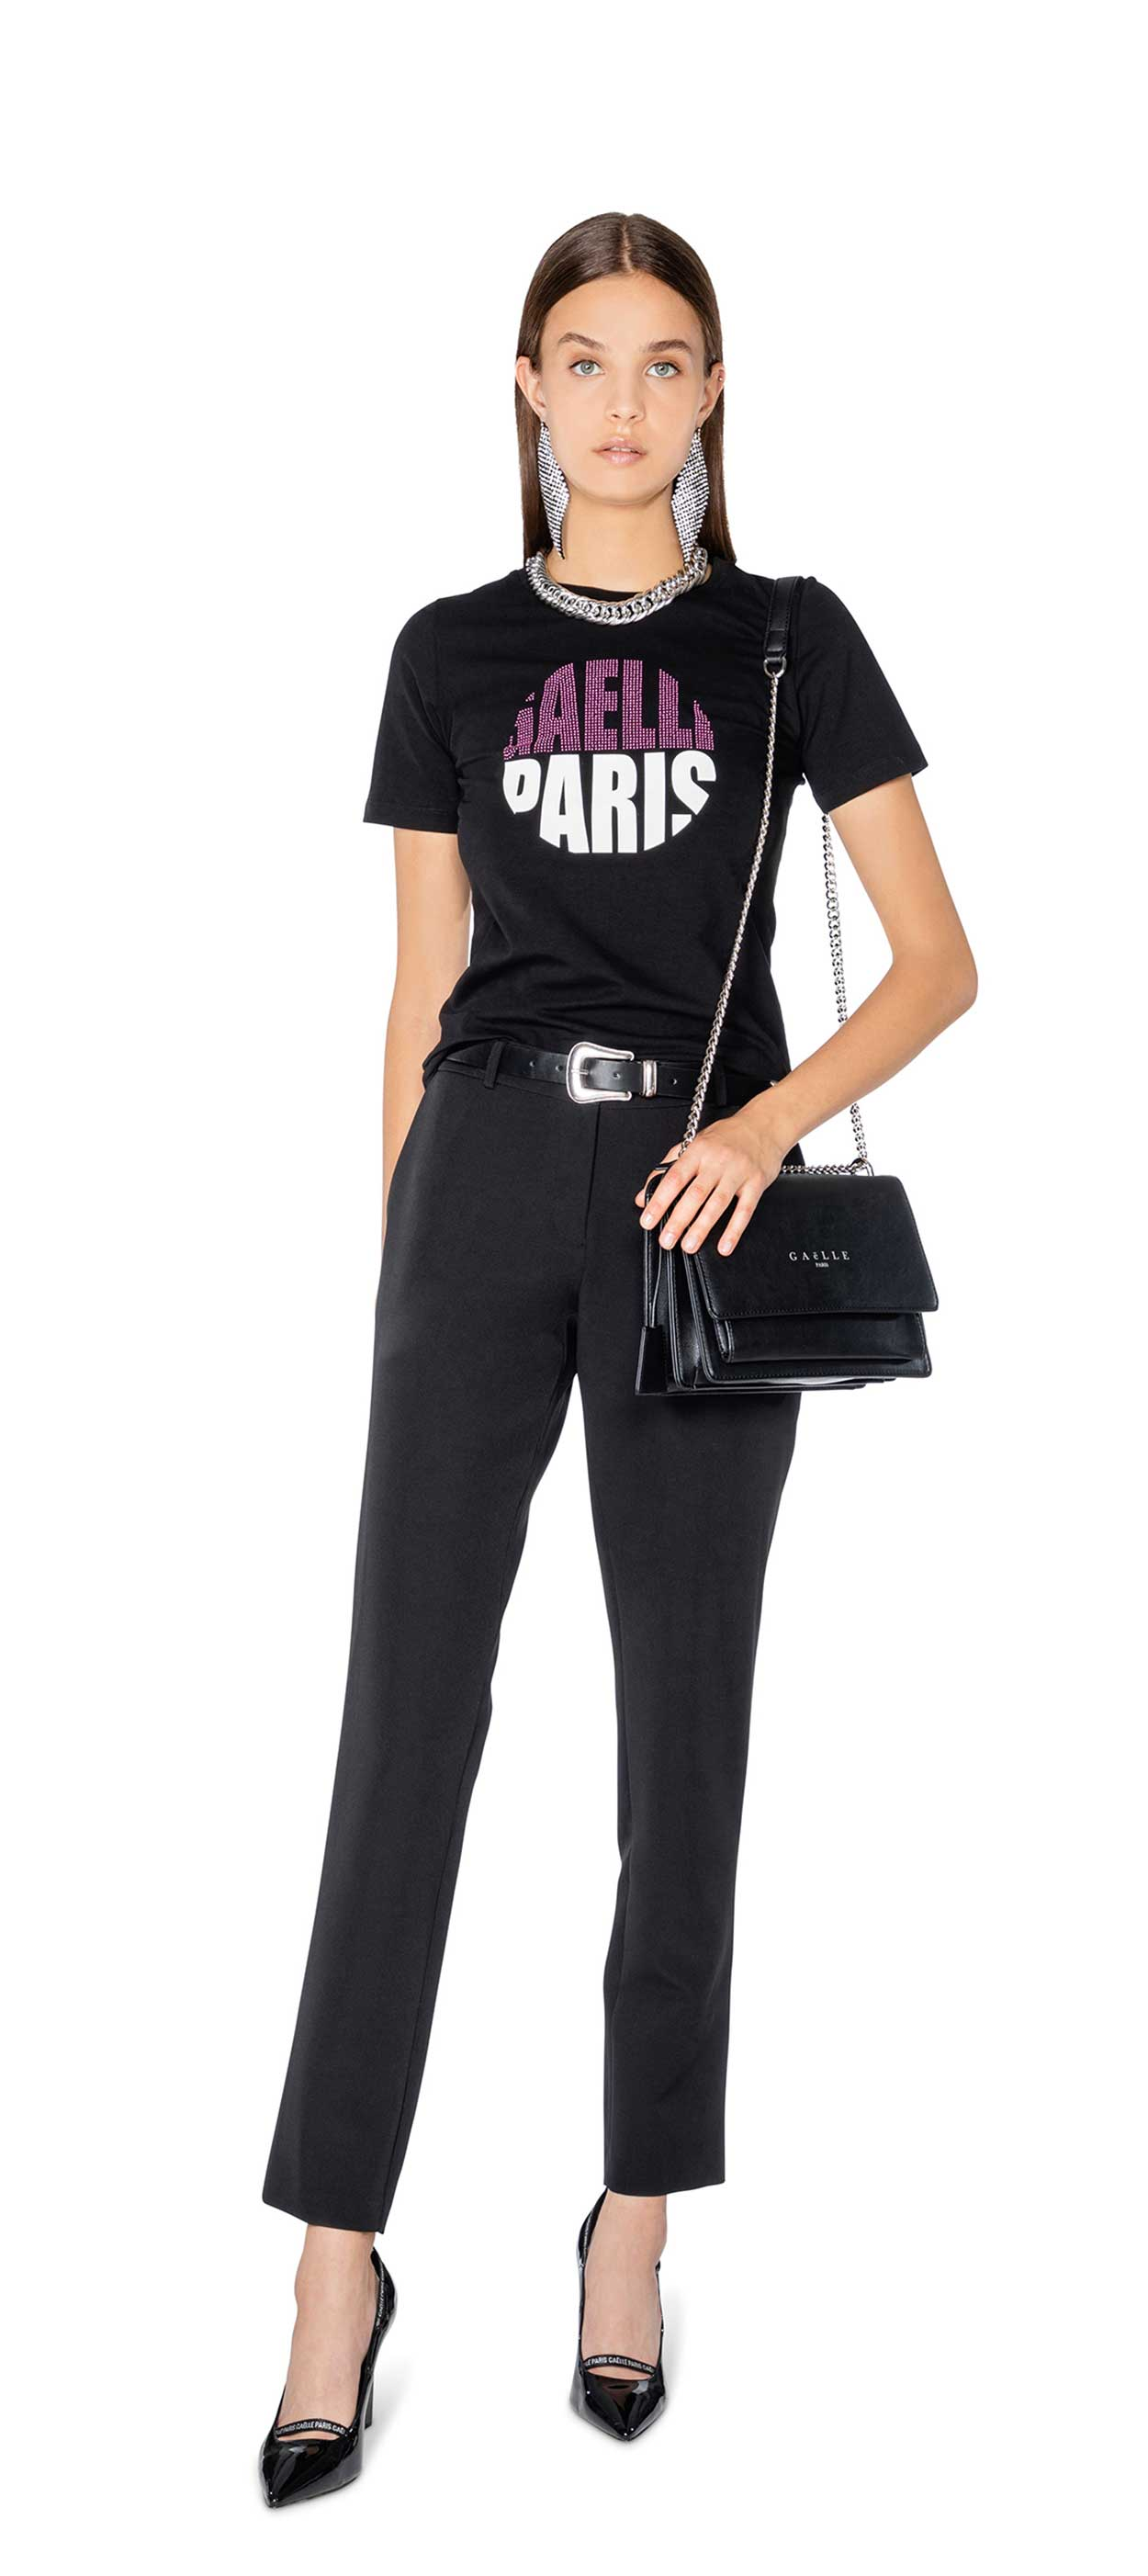 T-SHIRT - GBD7118 - GAELLE PARIS